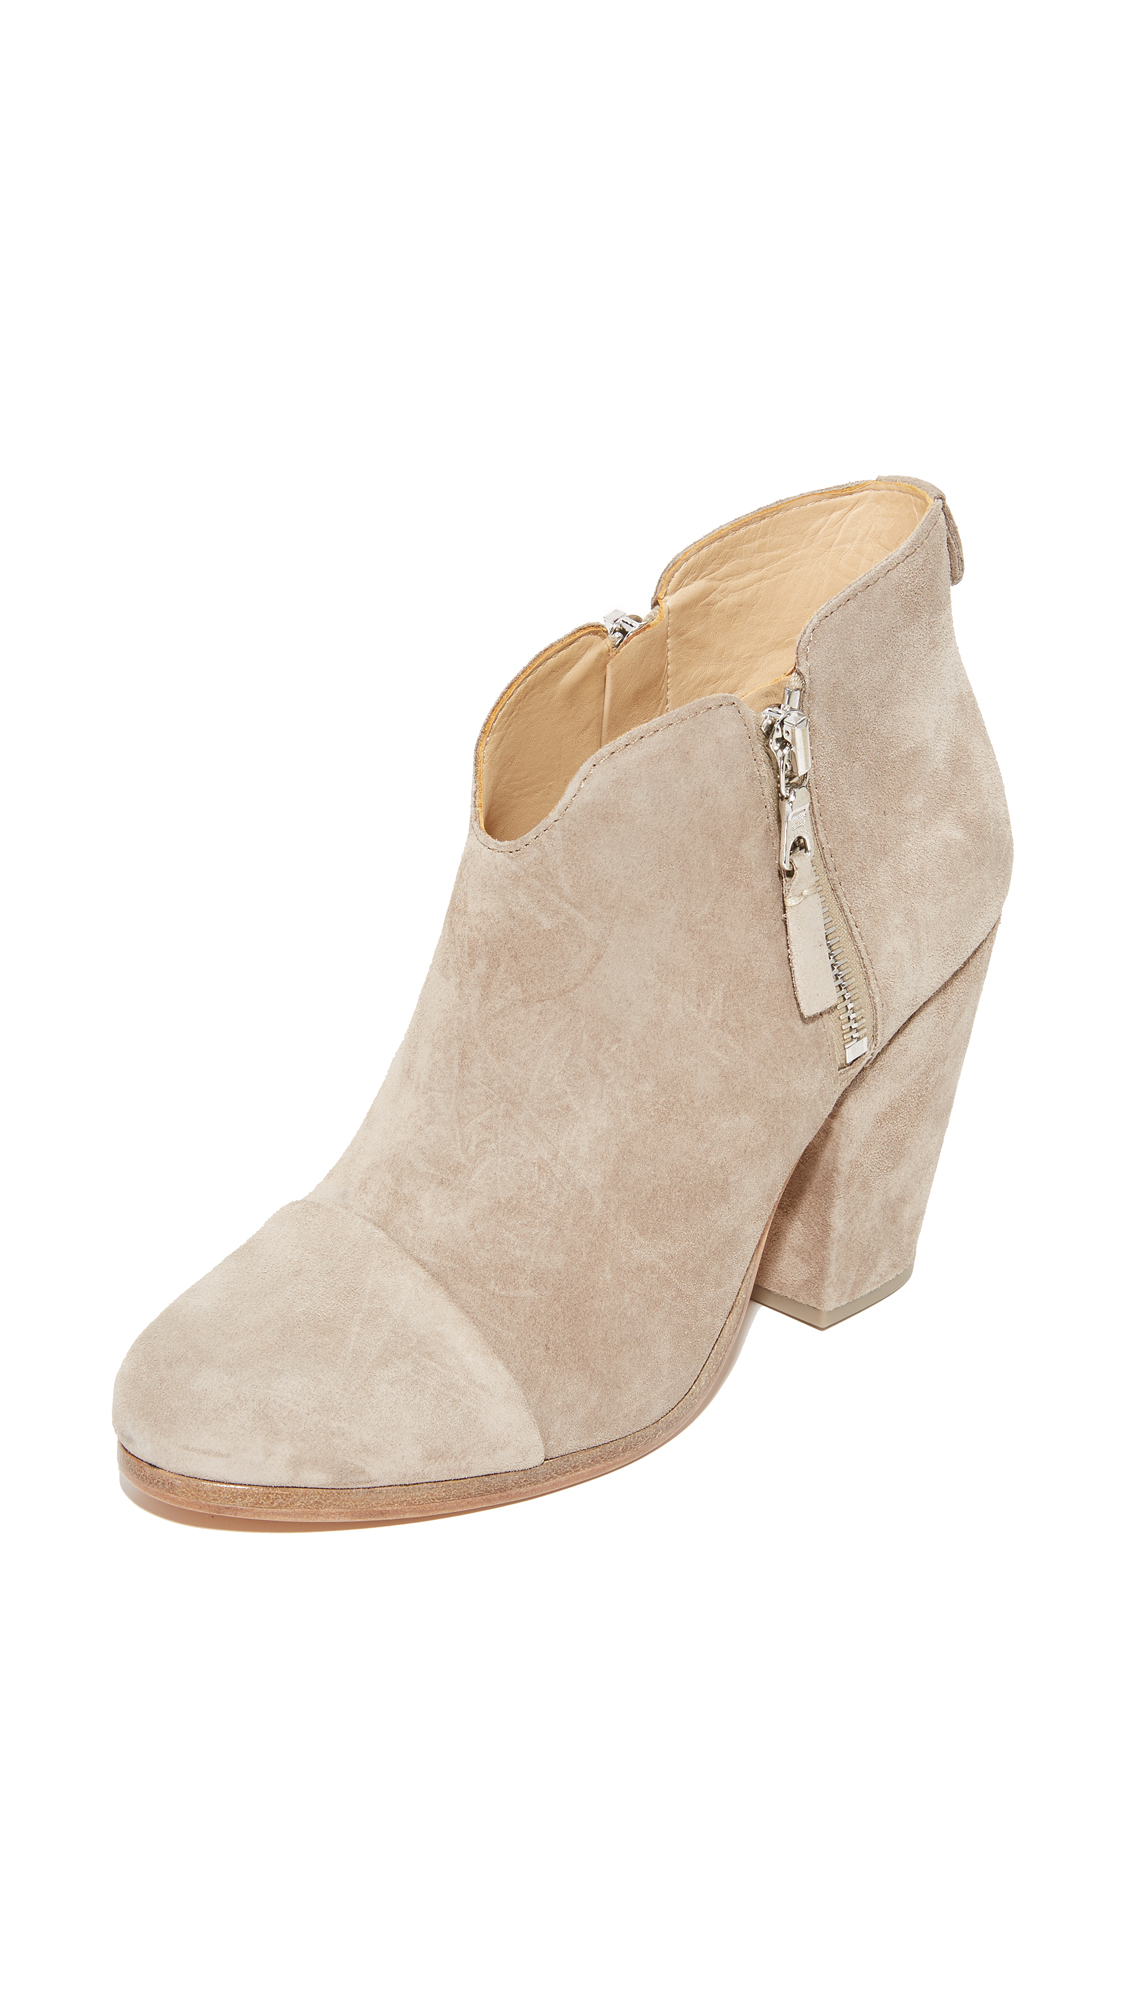 Rag & Bone Margot Booties - Stone